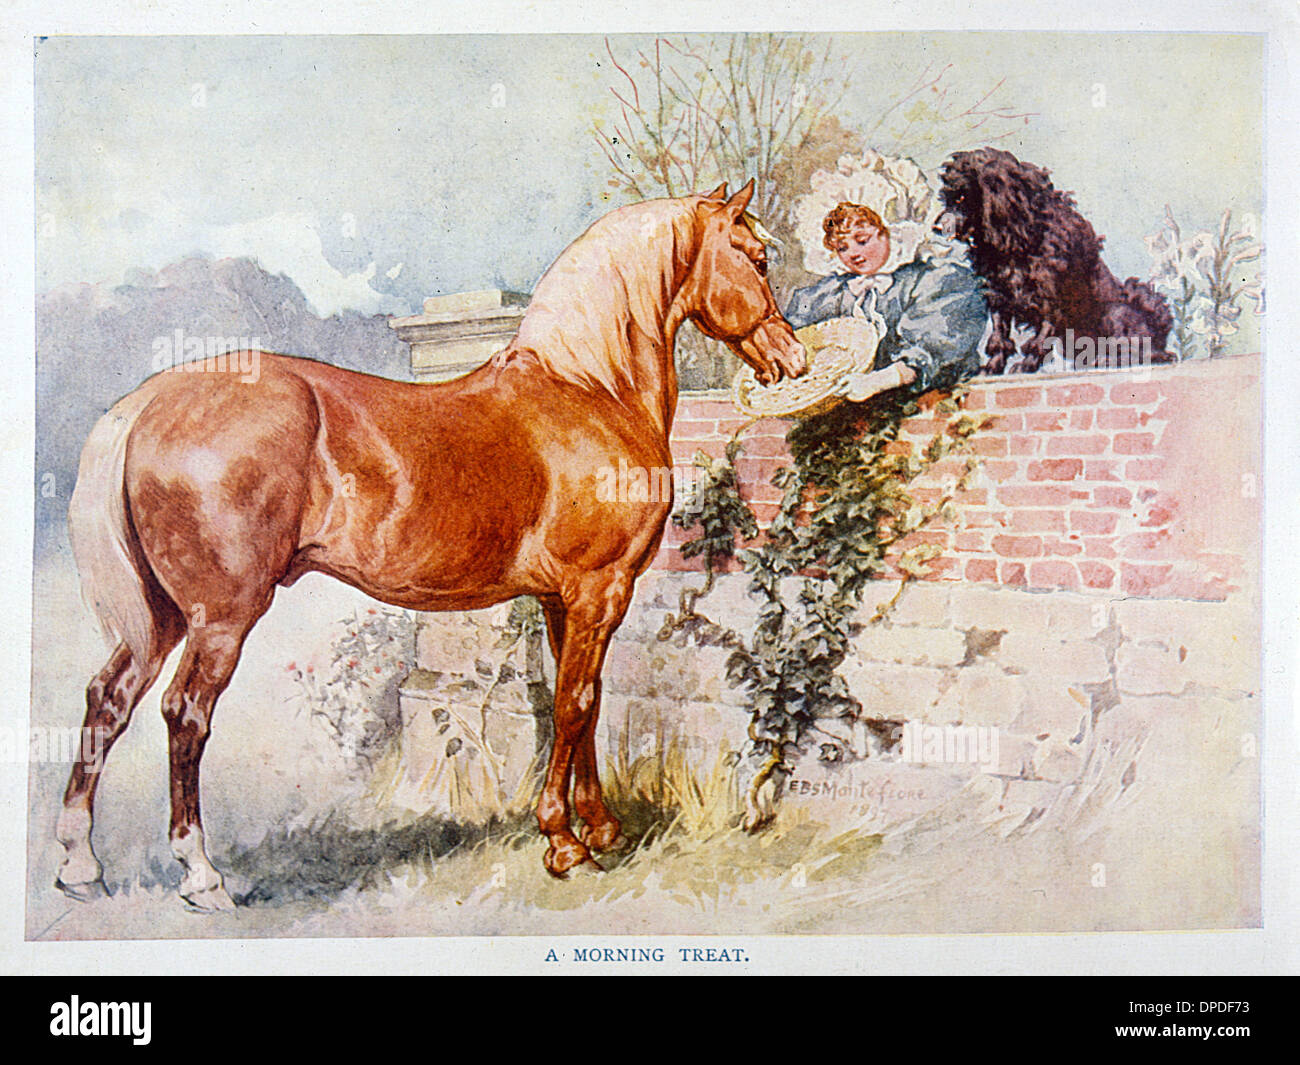 HORSE AND GIRL 1890S - Stock Image